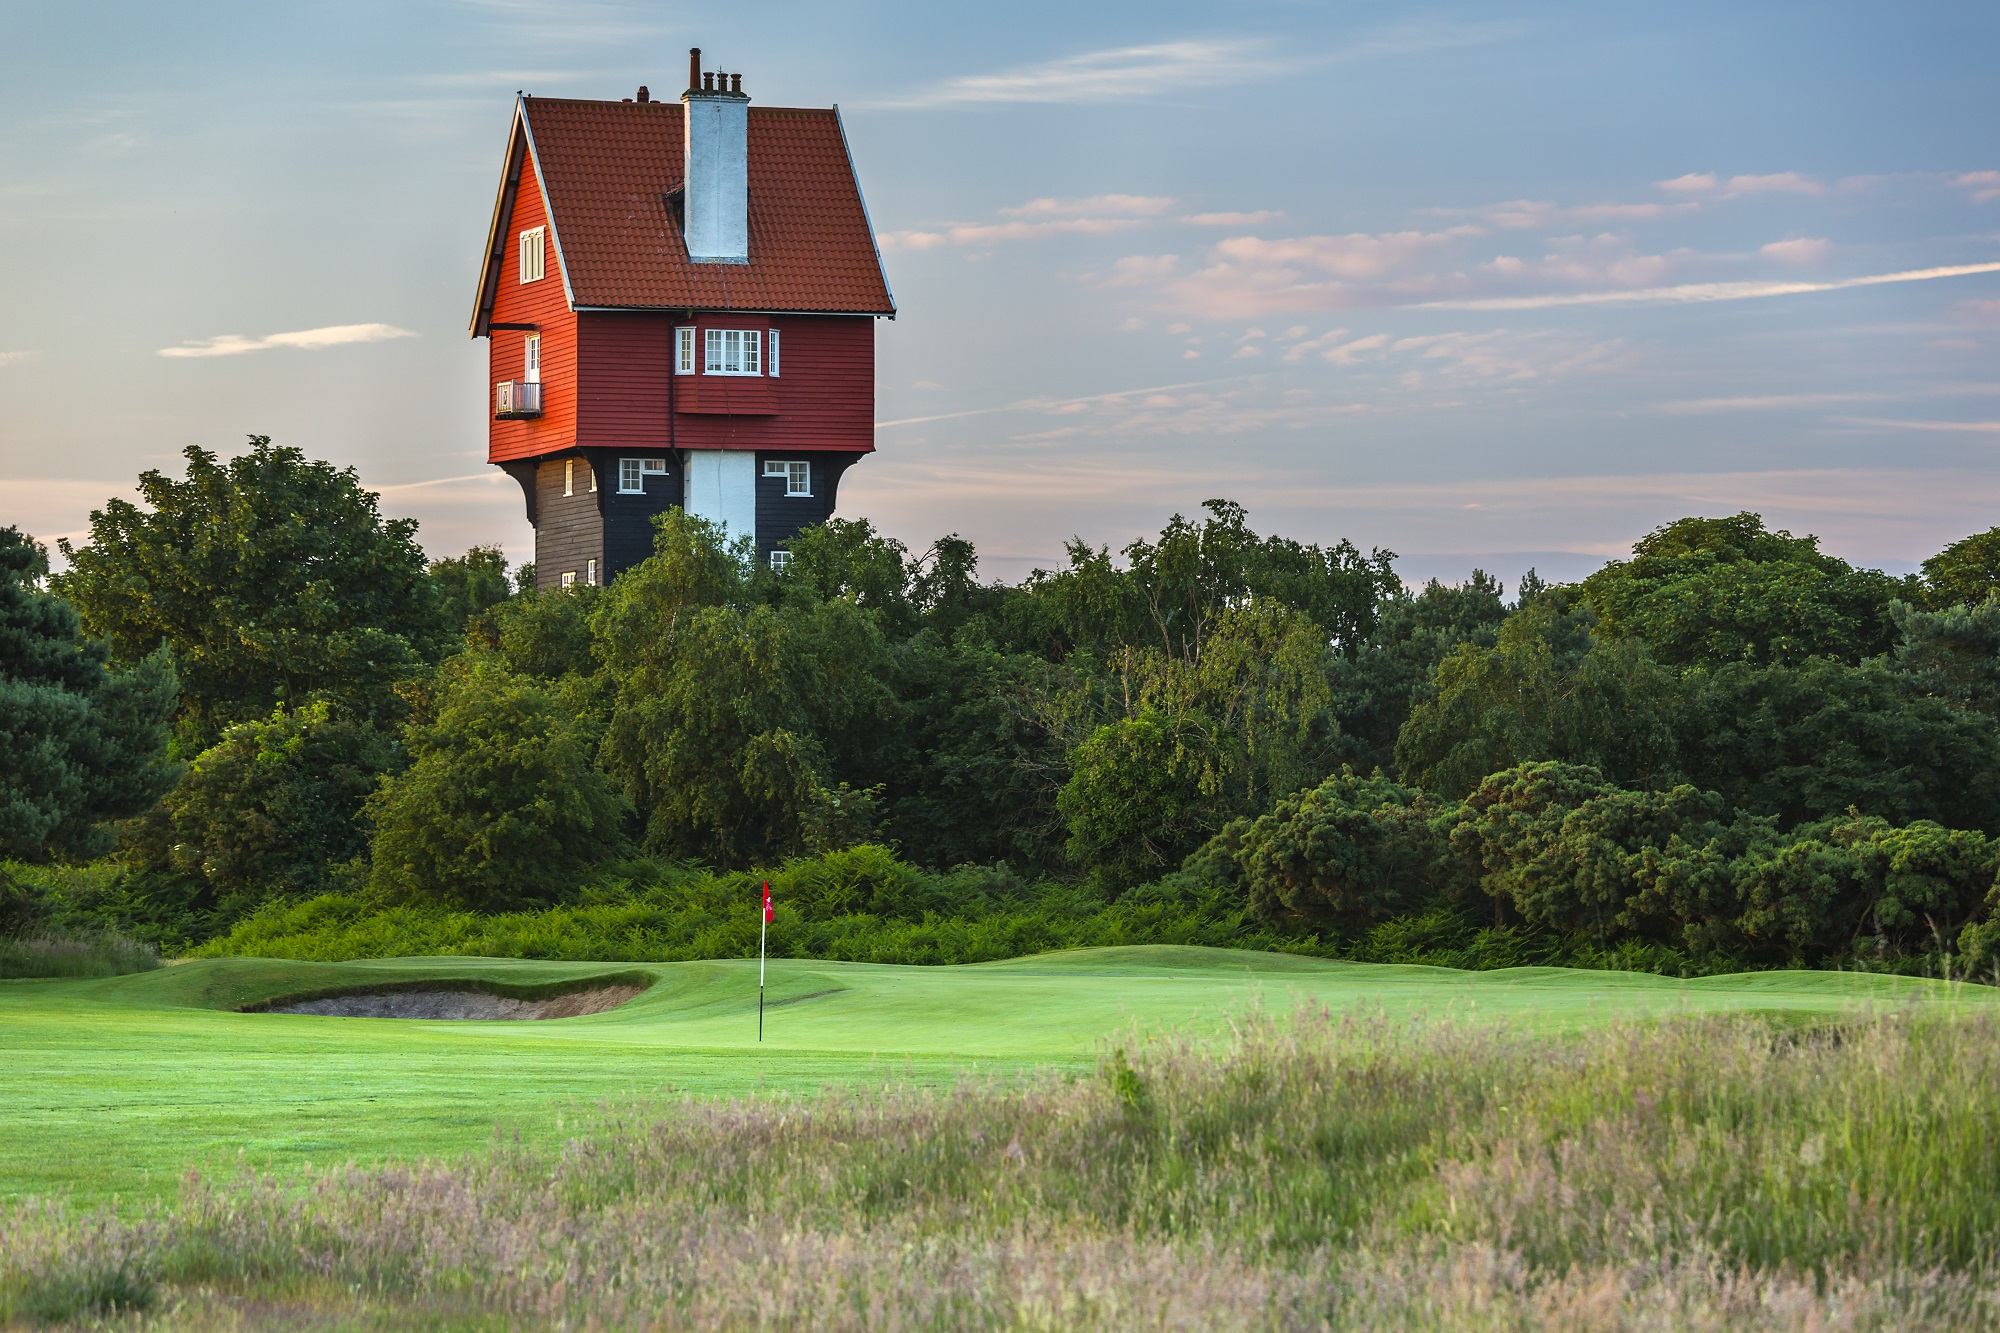 Thorpeness teams up with the Jazzy Golfer and Peter Finch to showcase Golf in Suffolk